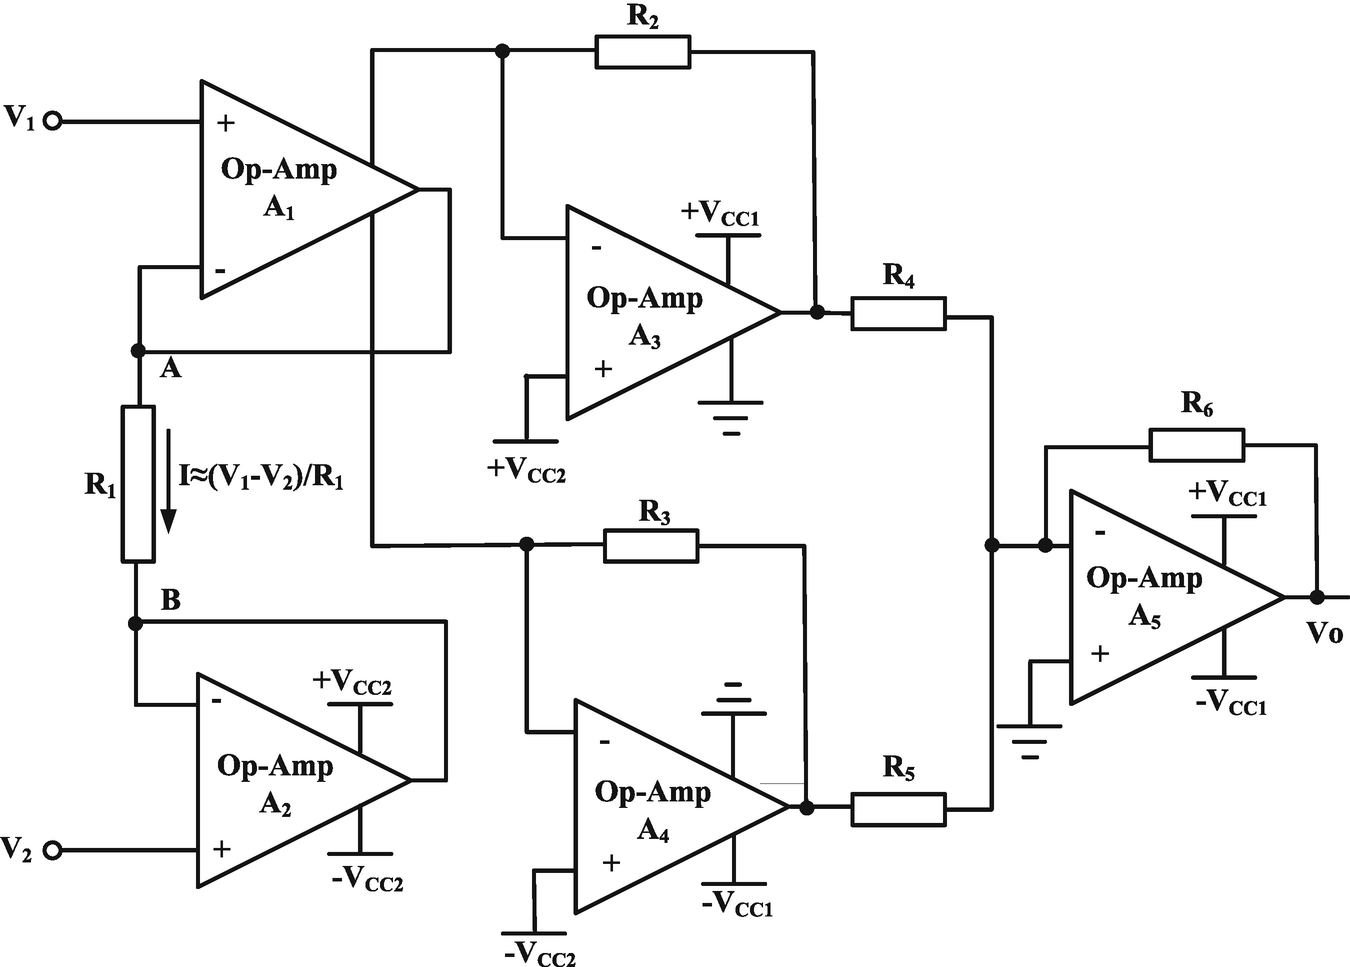 Cmia Based On Op Amp Power Supply Current Sensing Technique Difficulty Solving Problem Electrical Engineering Open Image In New Window Fig 28 First Generation Improved